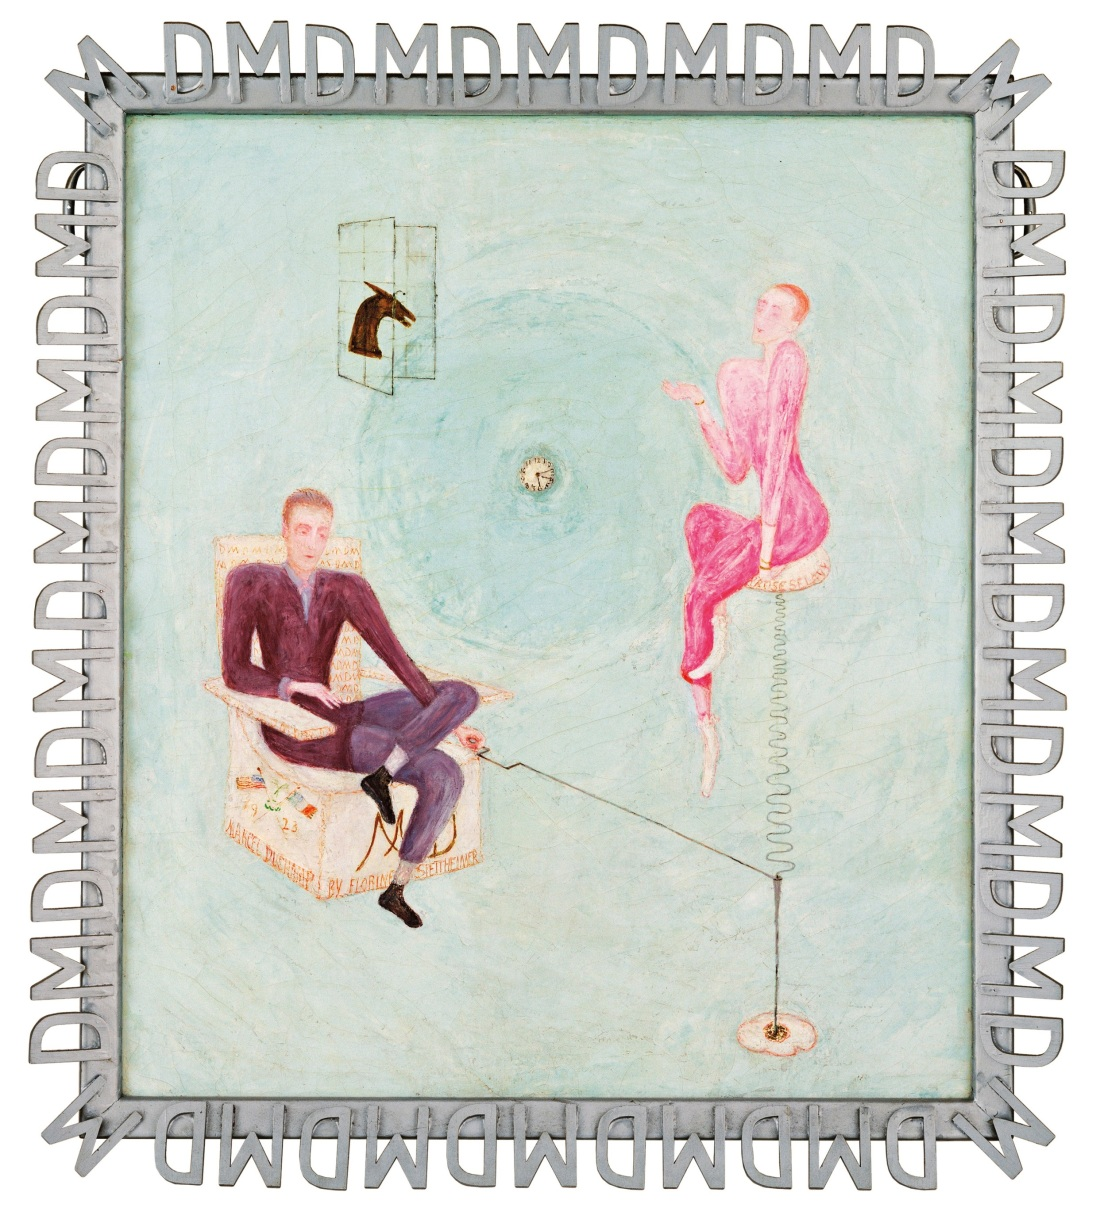 Stettheimer, Portrait of Marcel Duchamp and Rrose Selavy